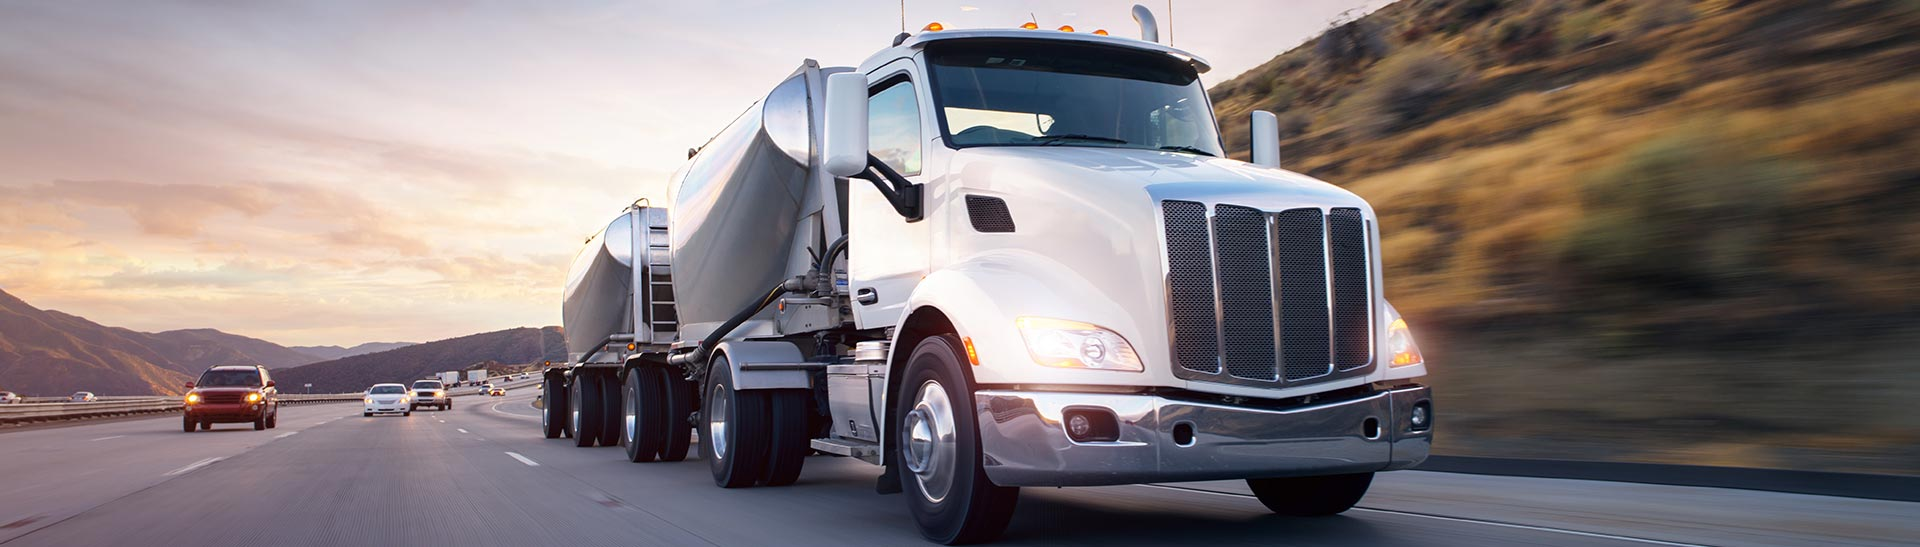 Union City Trucking Company, Trucking Services and Freight Forwarding Services